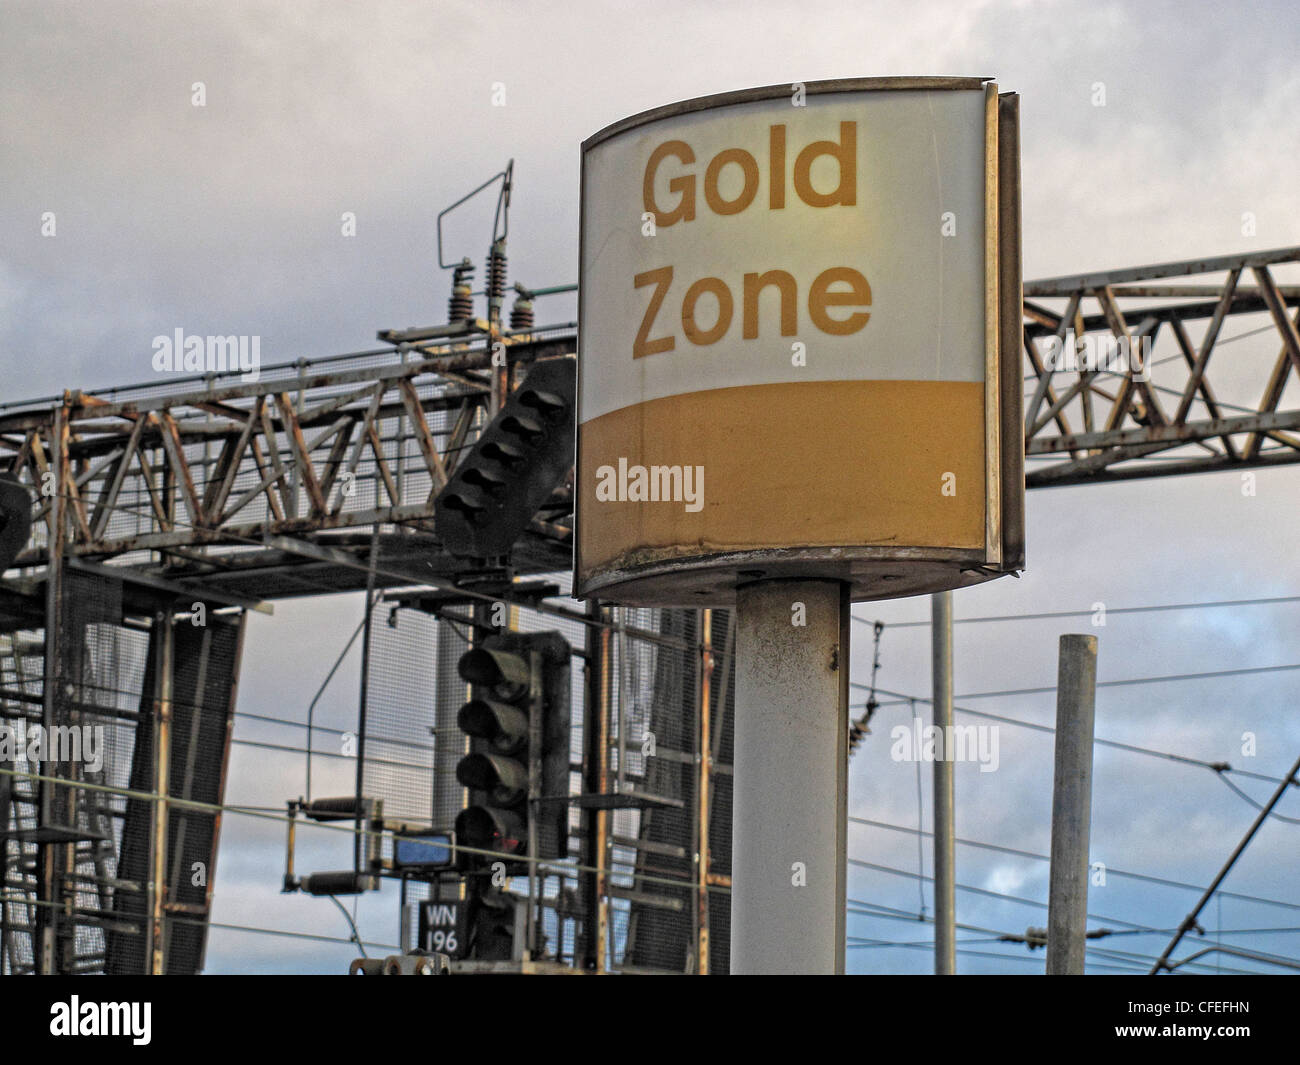 Gold Zone Virgin trains sign, Warrington Bank Quay, Parker St, Warrington, Cheshire , UK - Stock Image